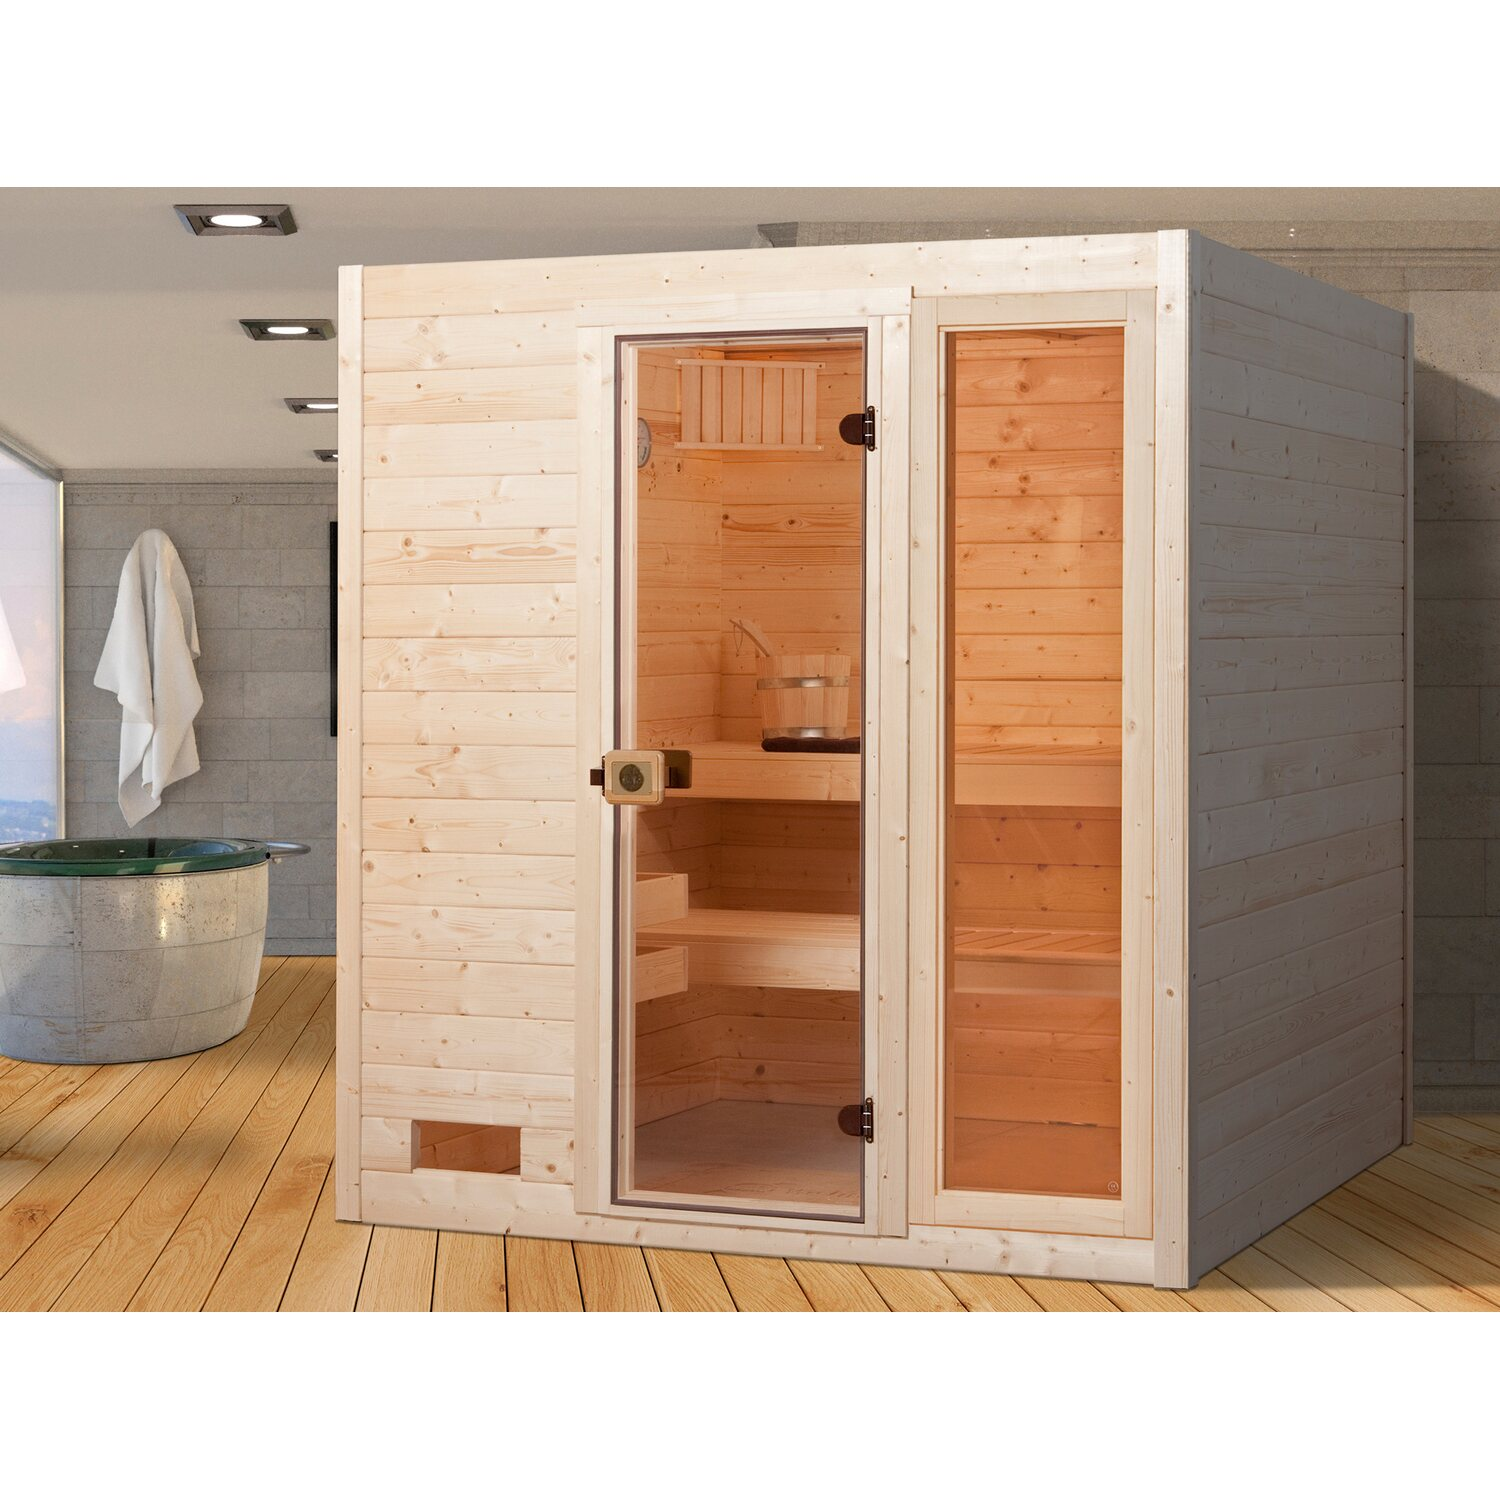 sauna kaufen guenstig gallery of domo sauna mylife alaska mini all in x x cm lbh with sauna. Black Bedroom Furniture Sets. Home Design Ideas